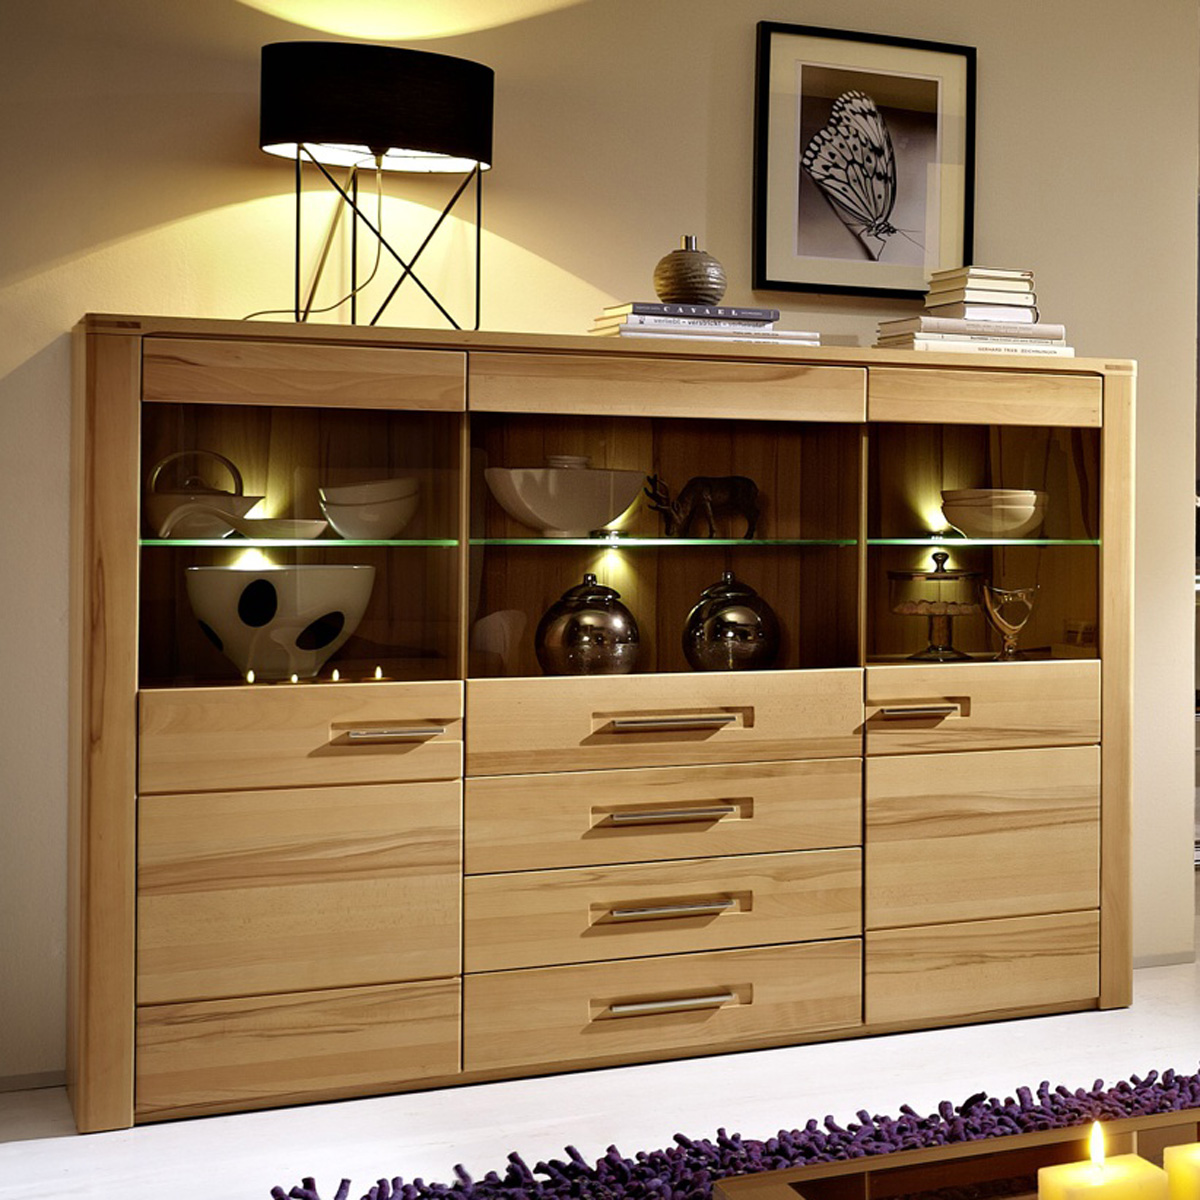 highboard pure sideboard wohnzimmer kernbuche inkl led neu ebay. Black Bedroom Furniture Sets. Home Design Ideas